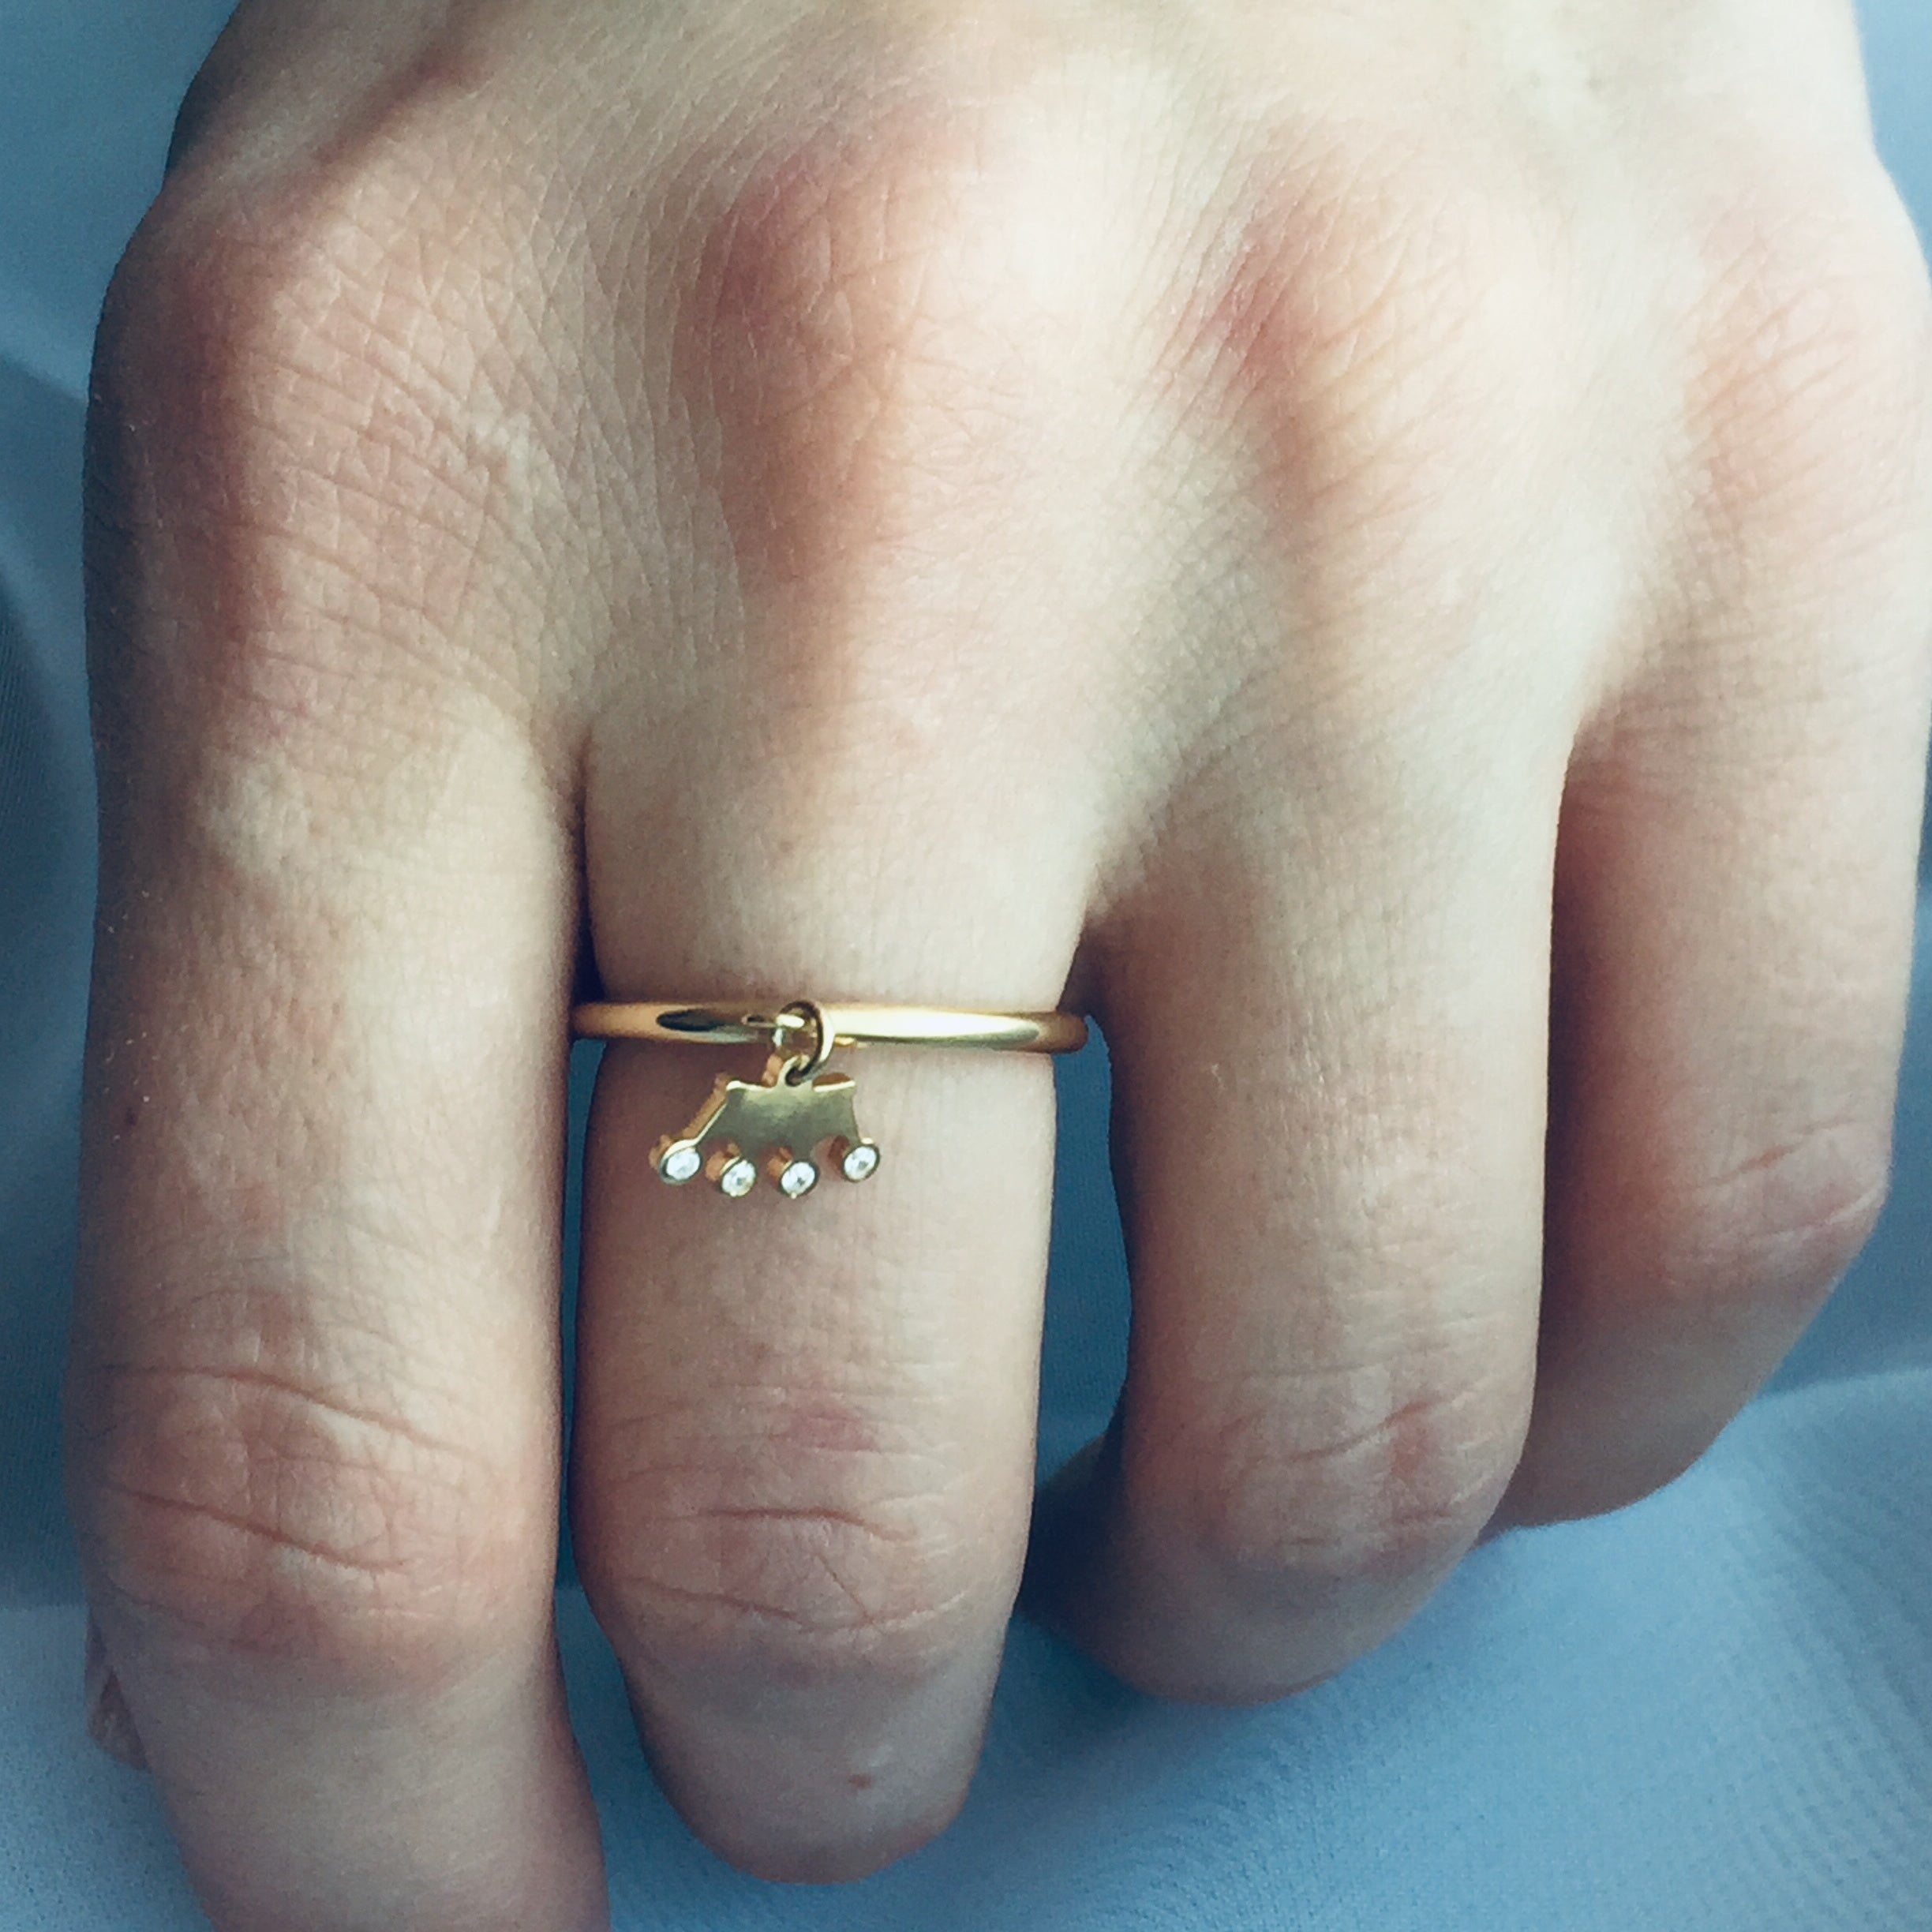 E2R ring - BYVELA designer jewellery in silver and gold